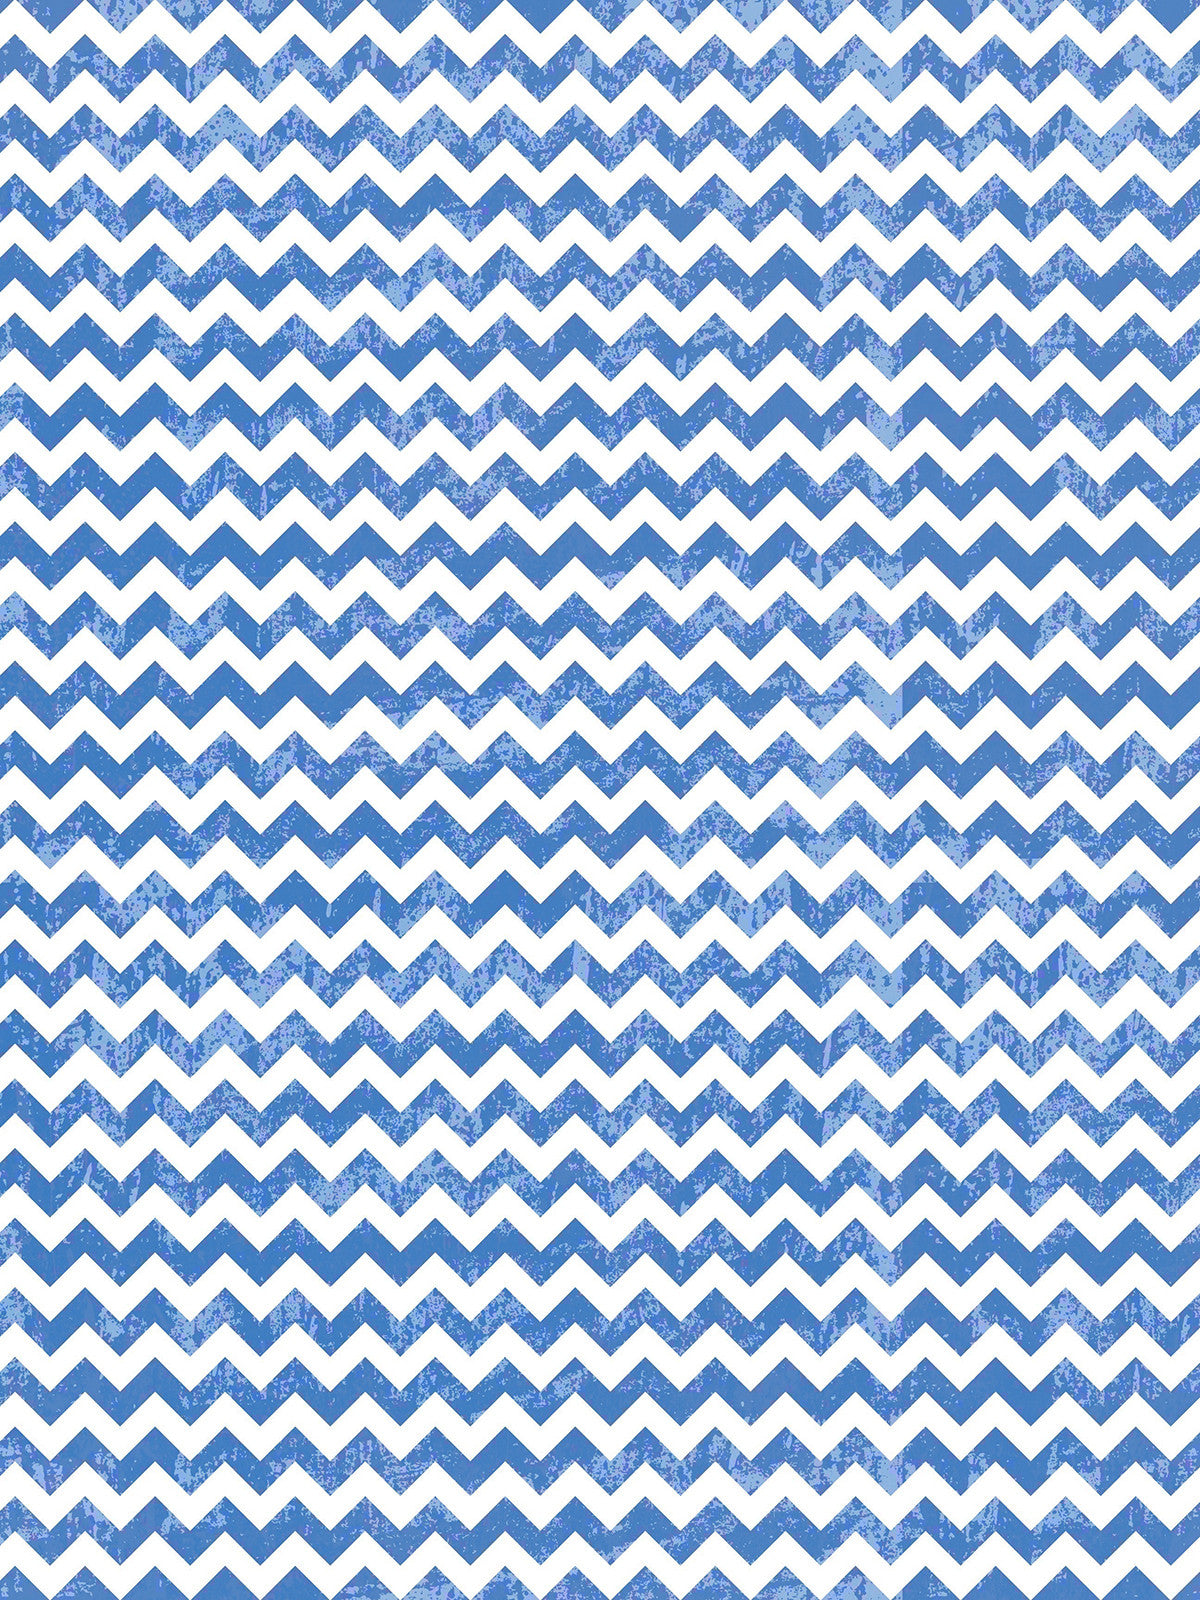 Navy Chevron Printed Photo Background / 9810